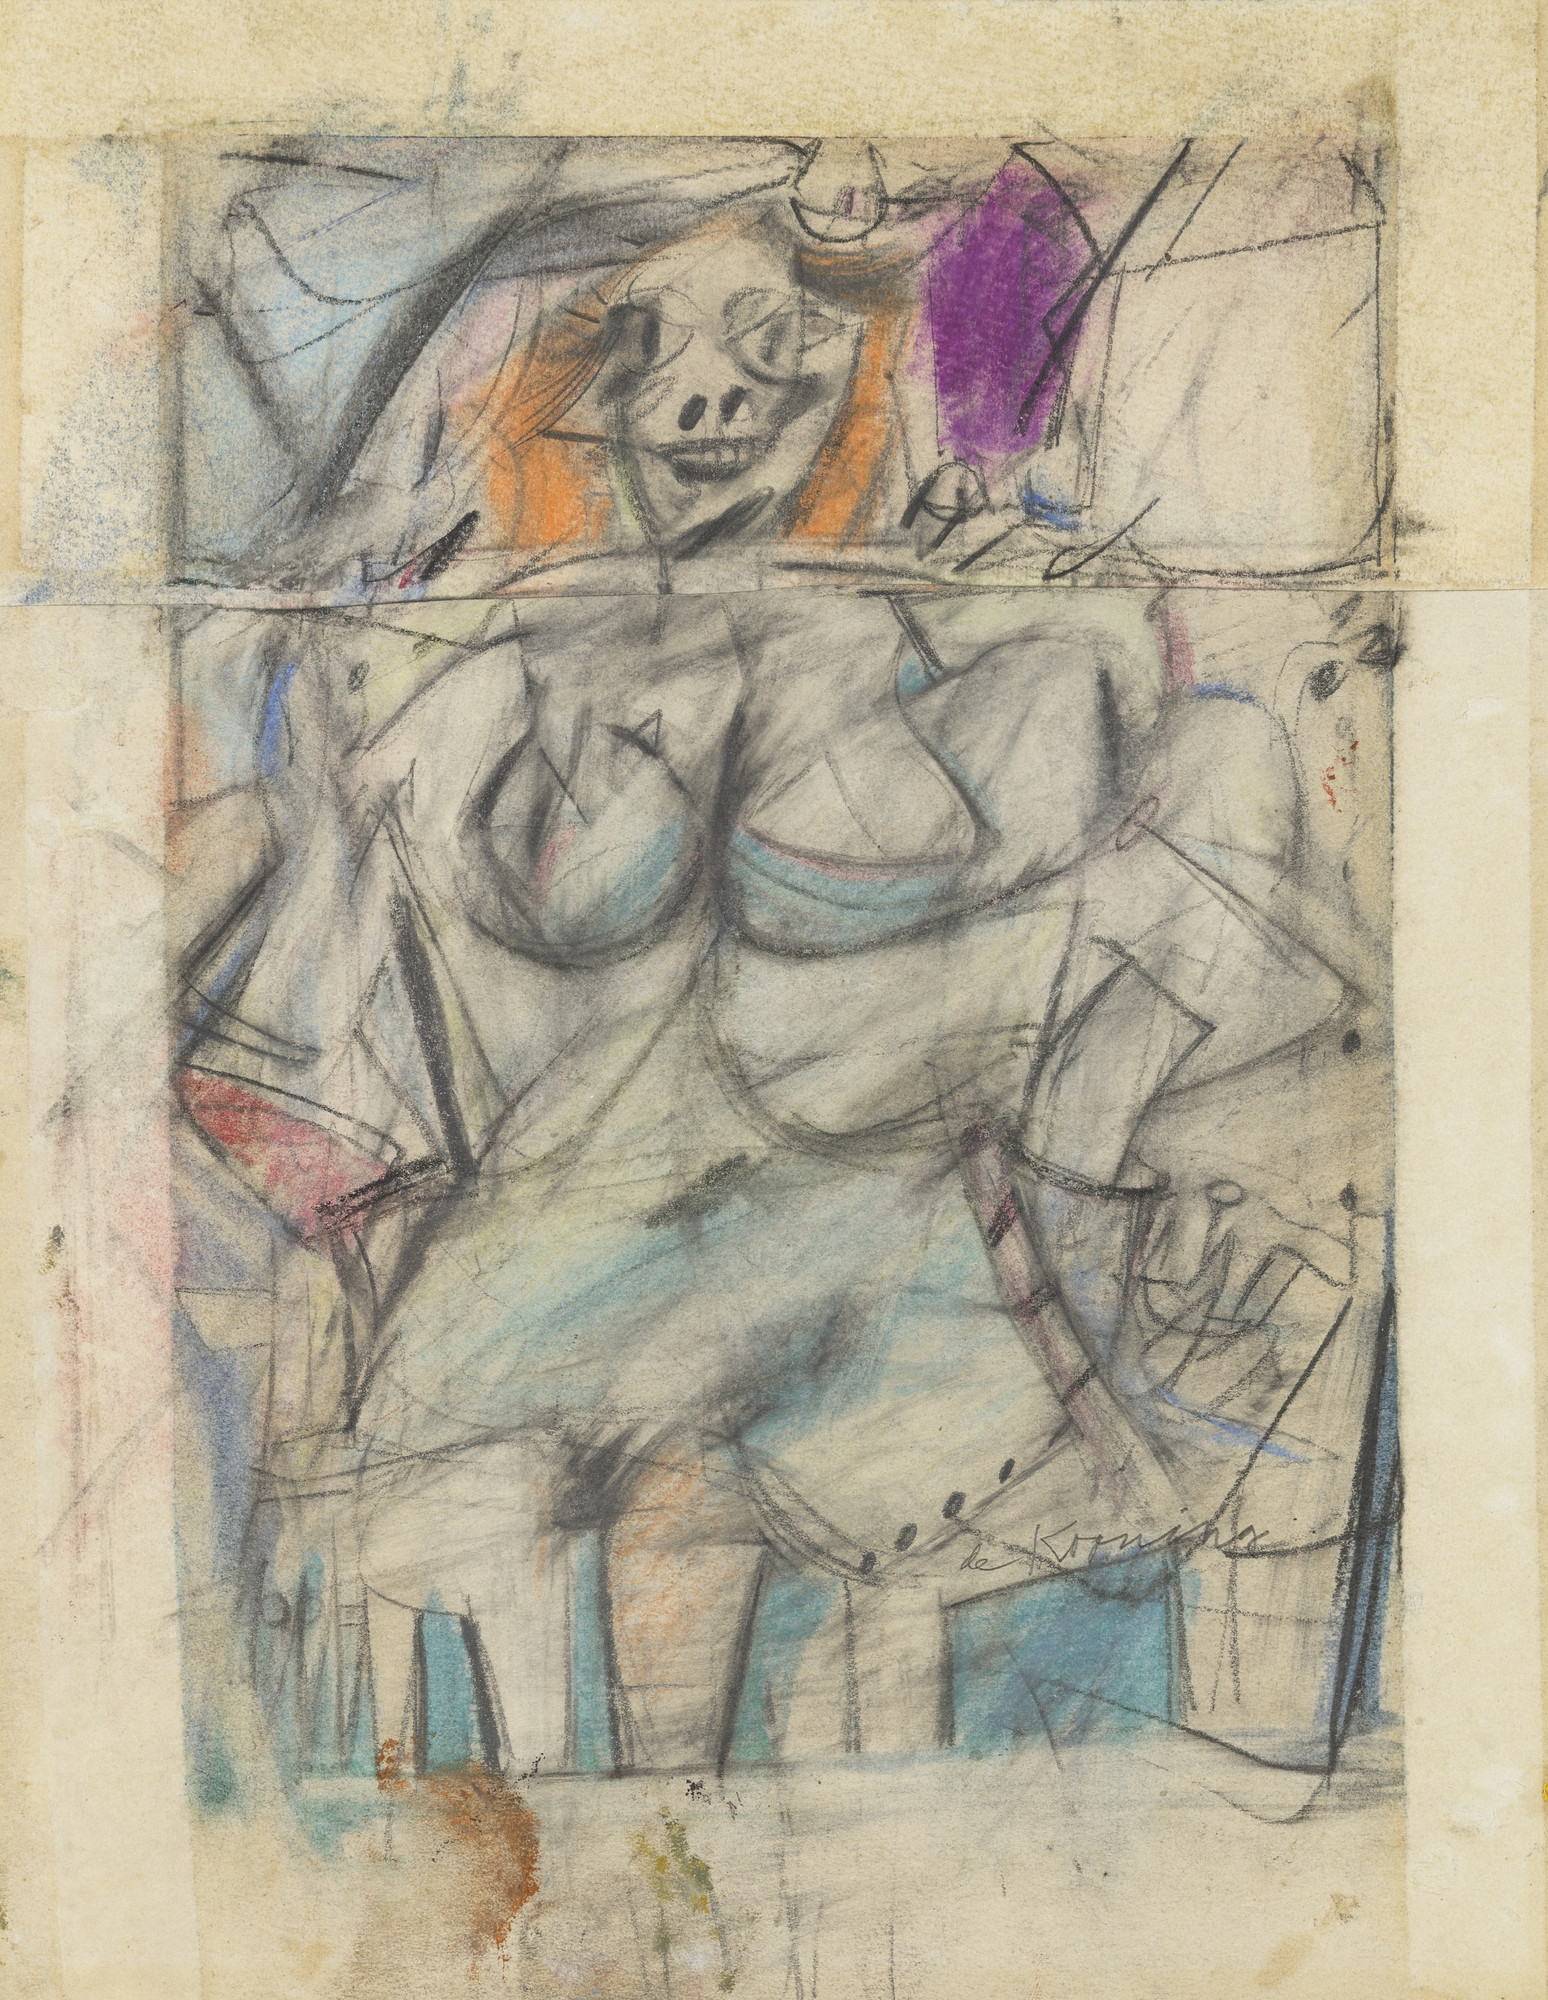 Willem de Kooning Seated Woman (1952)